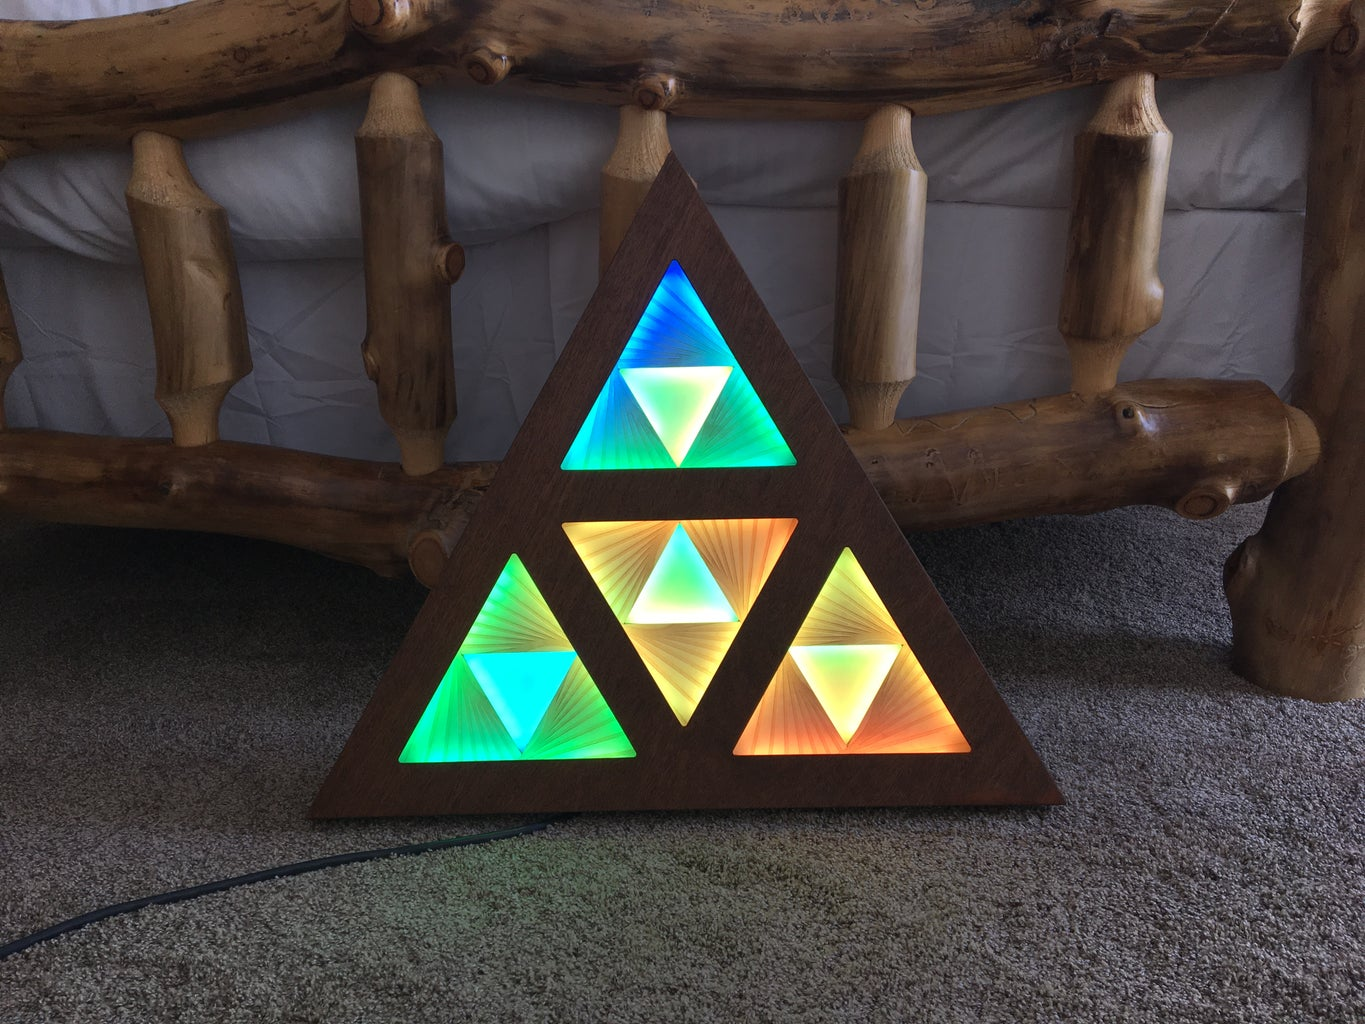 Layered Lights in Wooden Frame